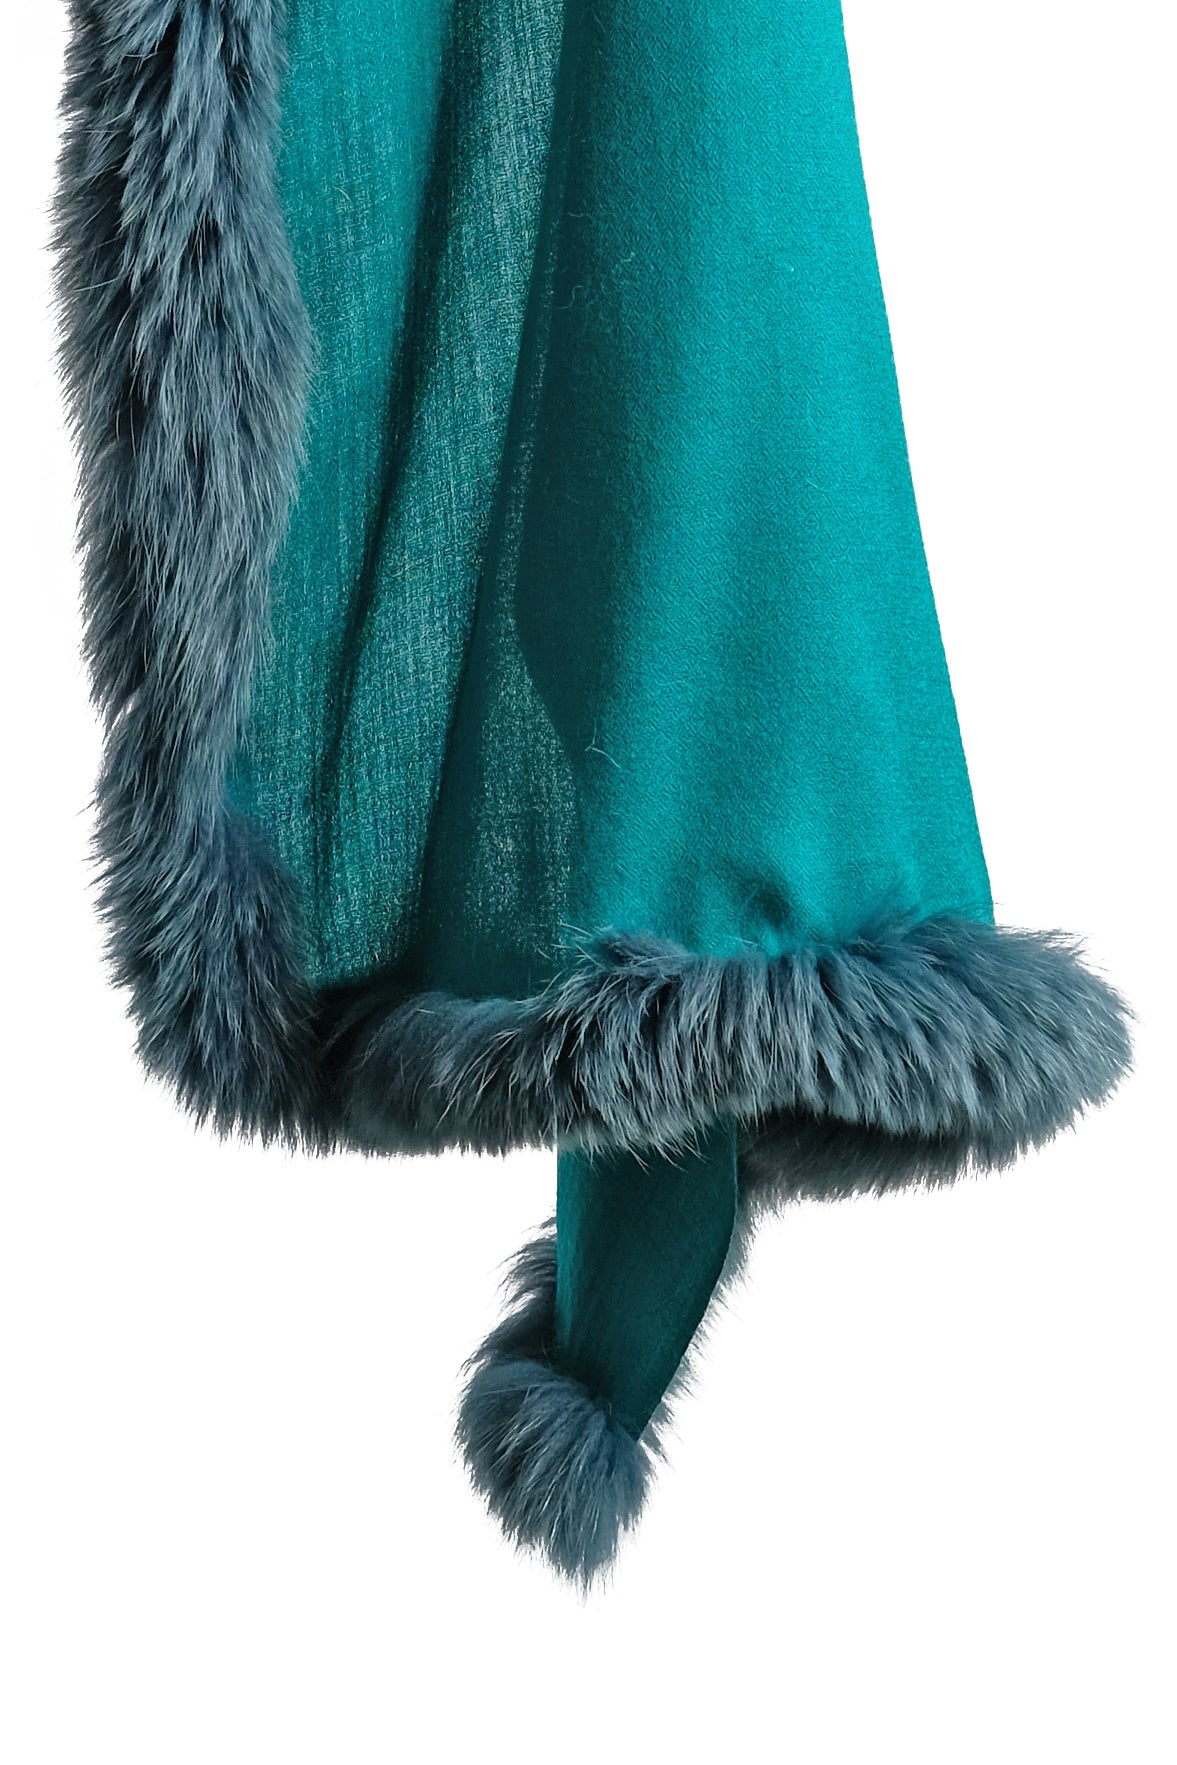 Teal Fur Shawl